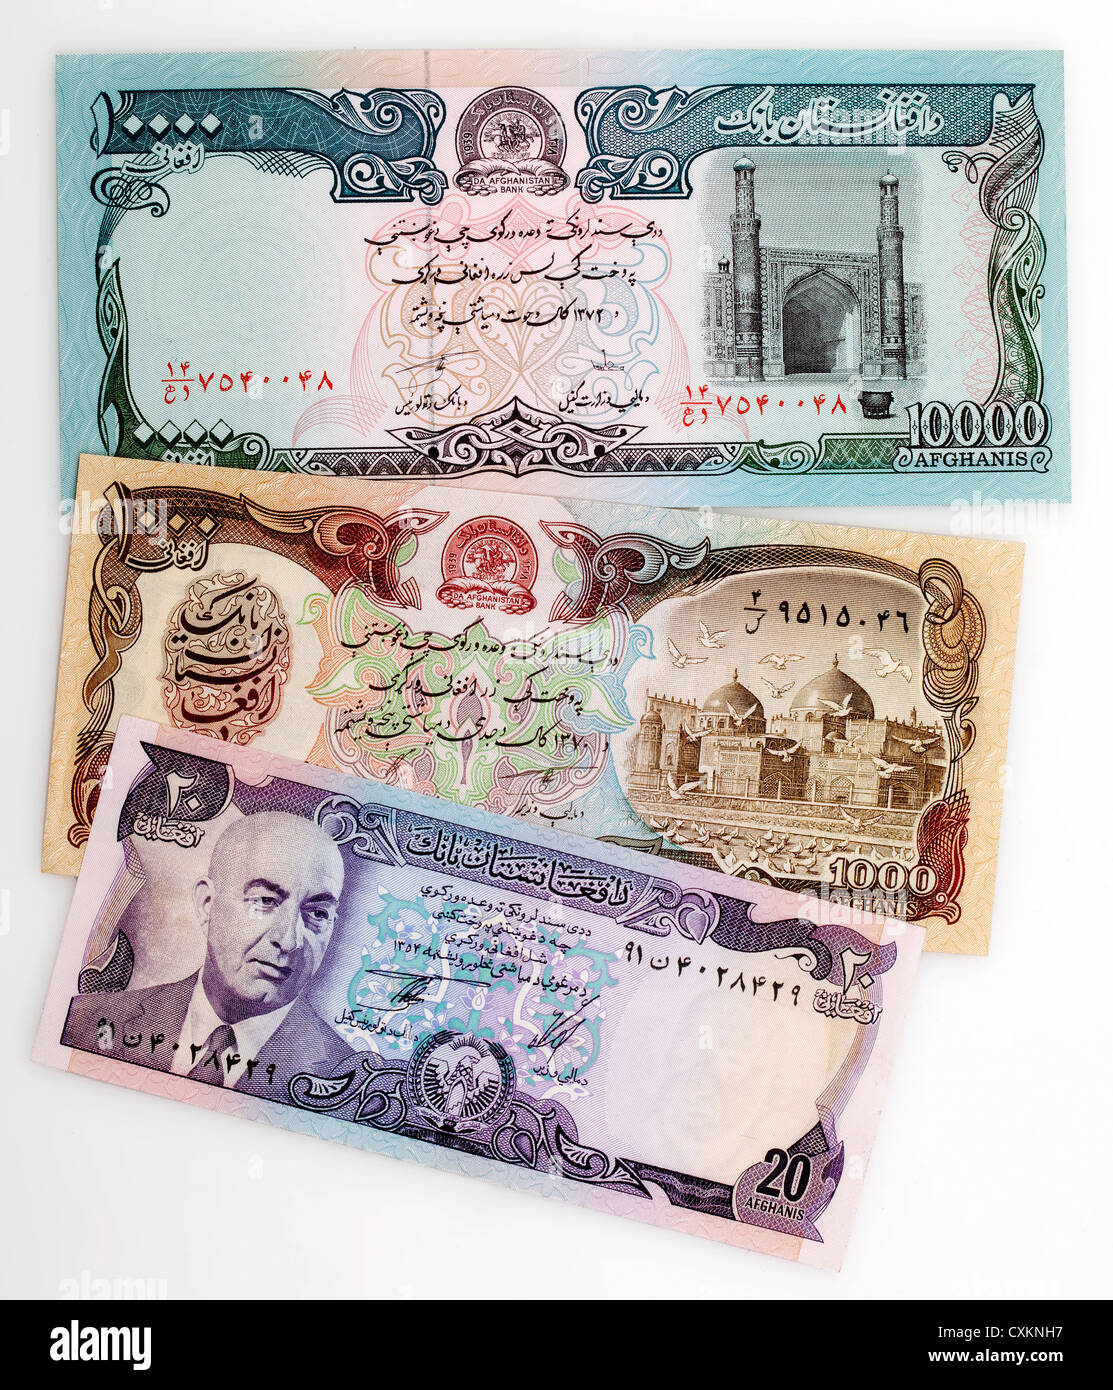 Three historical bank notes from Afghanistan - Stock Image